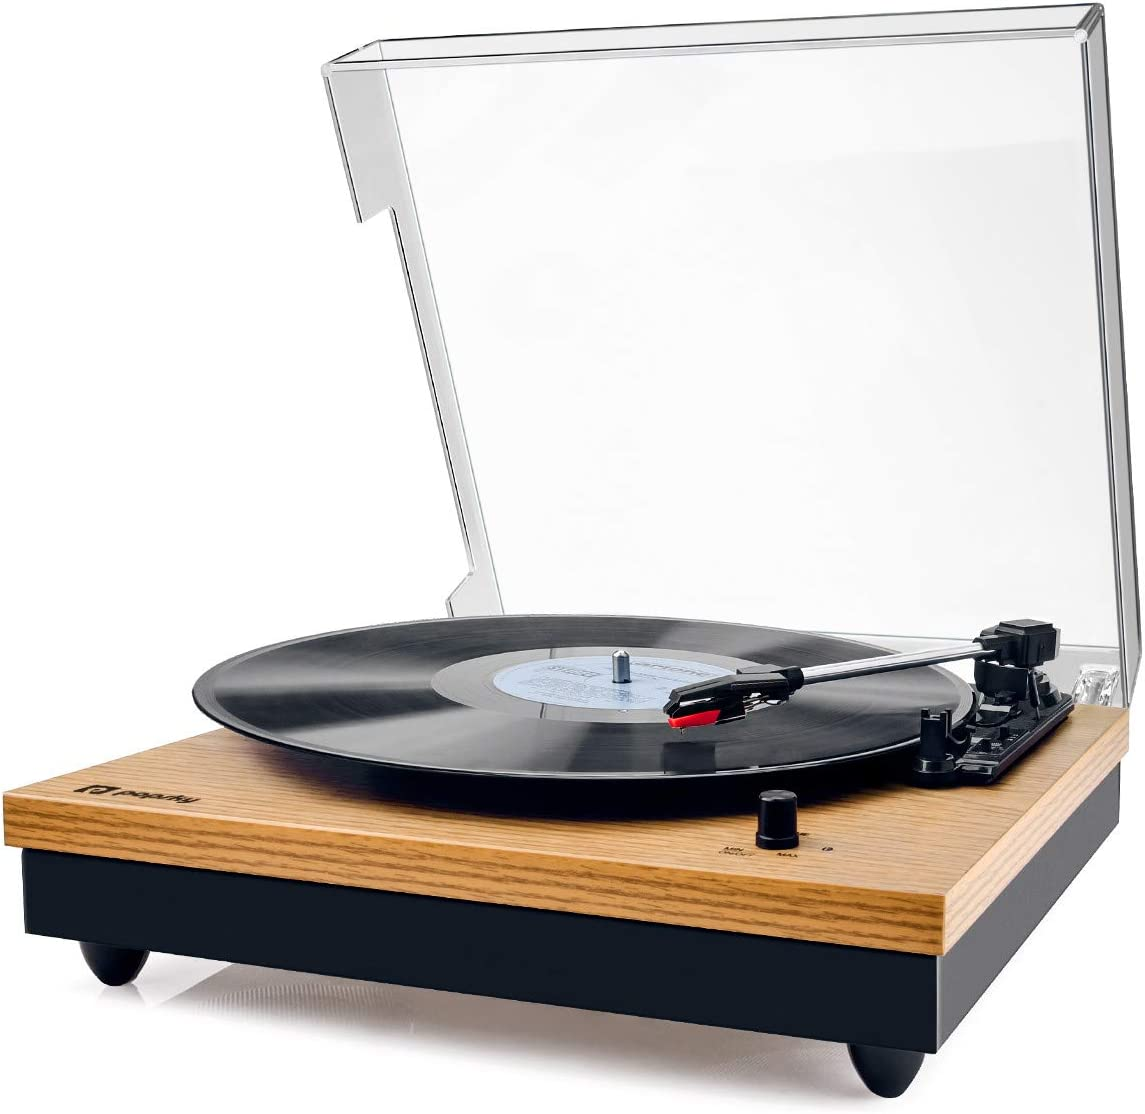 Record Player, Popsky Vintage Turntable 3-Speed Bluetooth Record Player with Speaker, Portable LP Vinyl Player, RCA Jack, Natural Wood